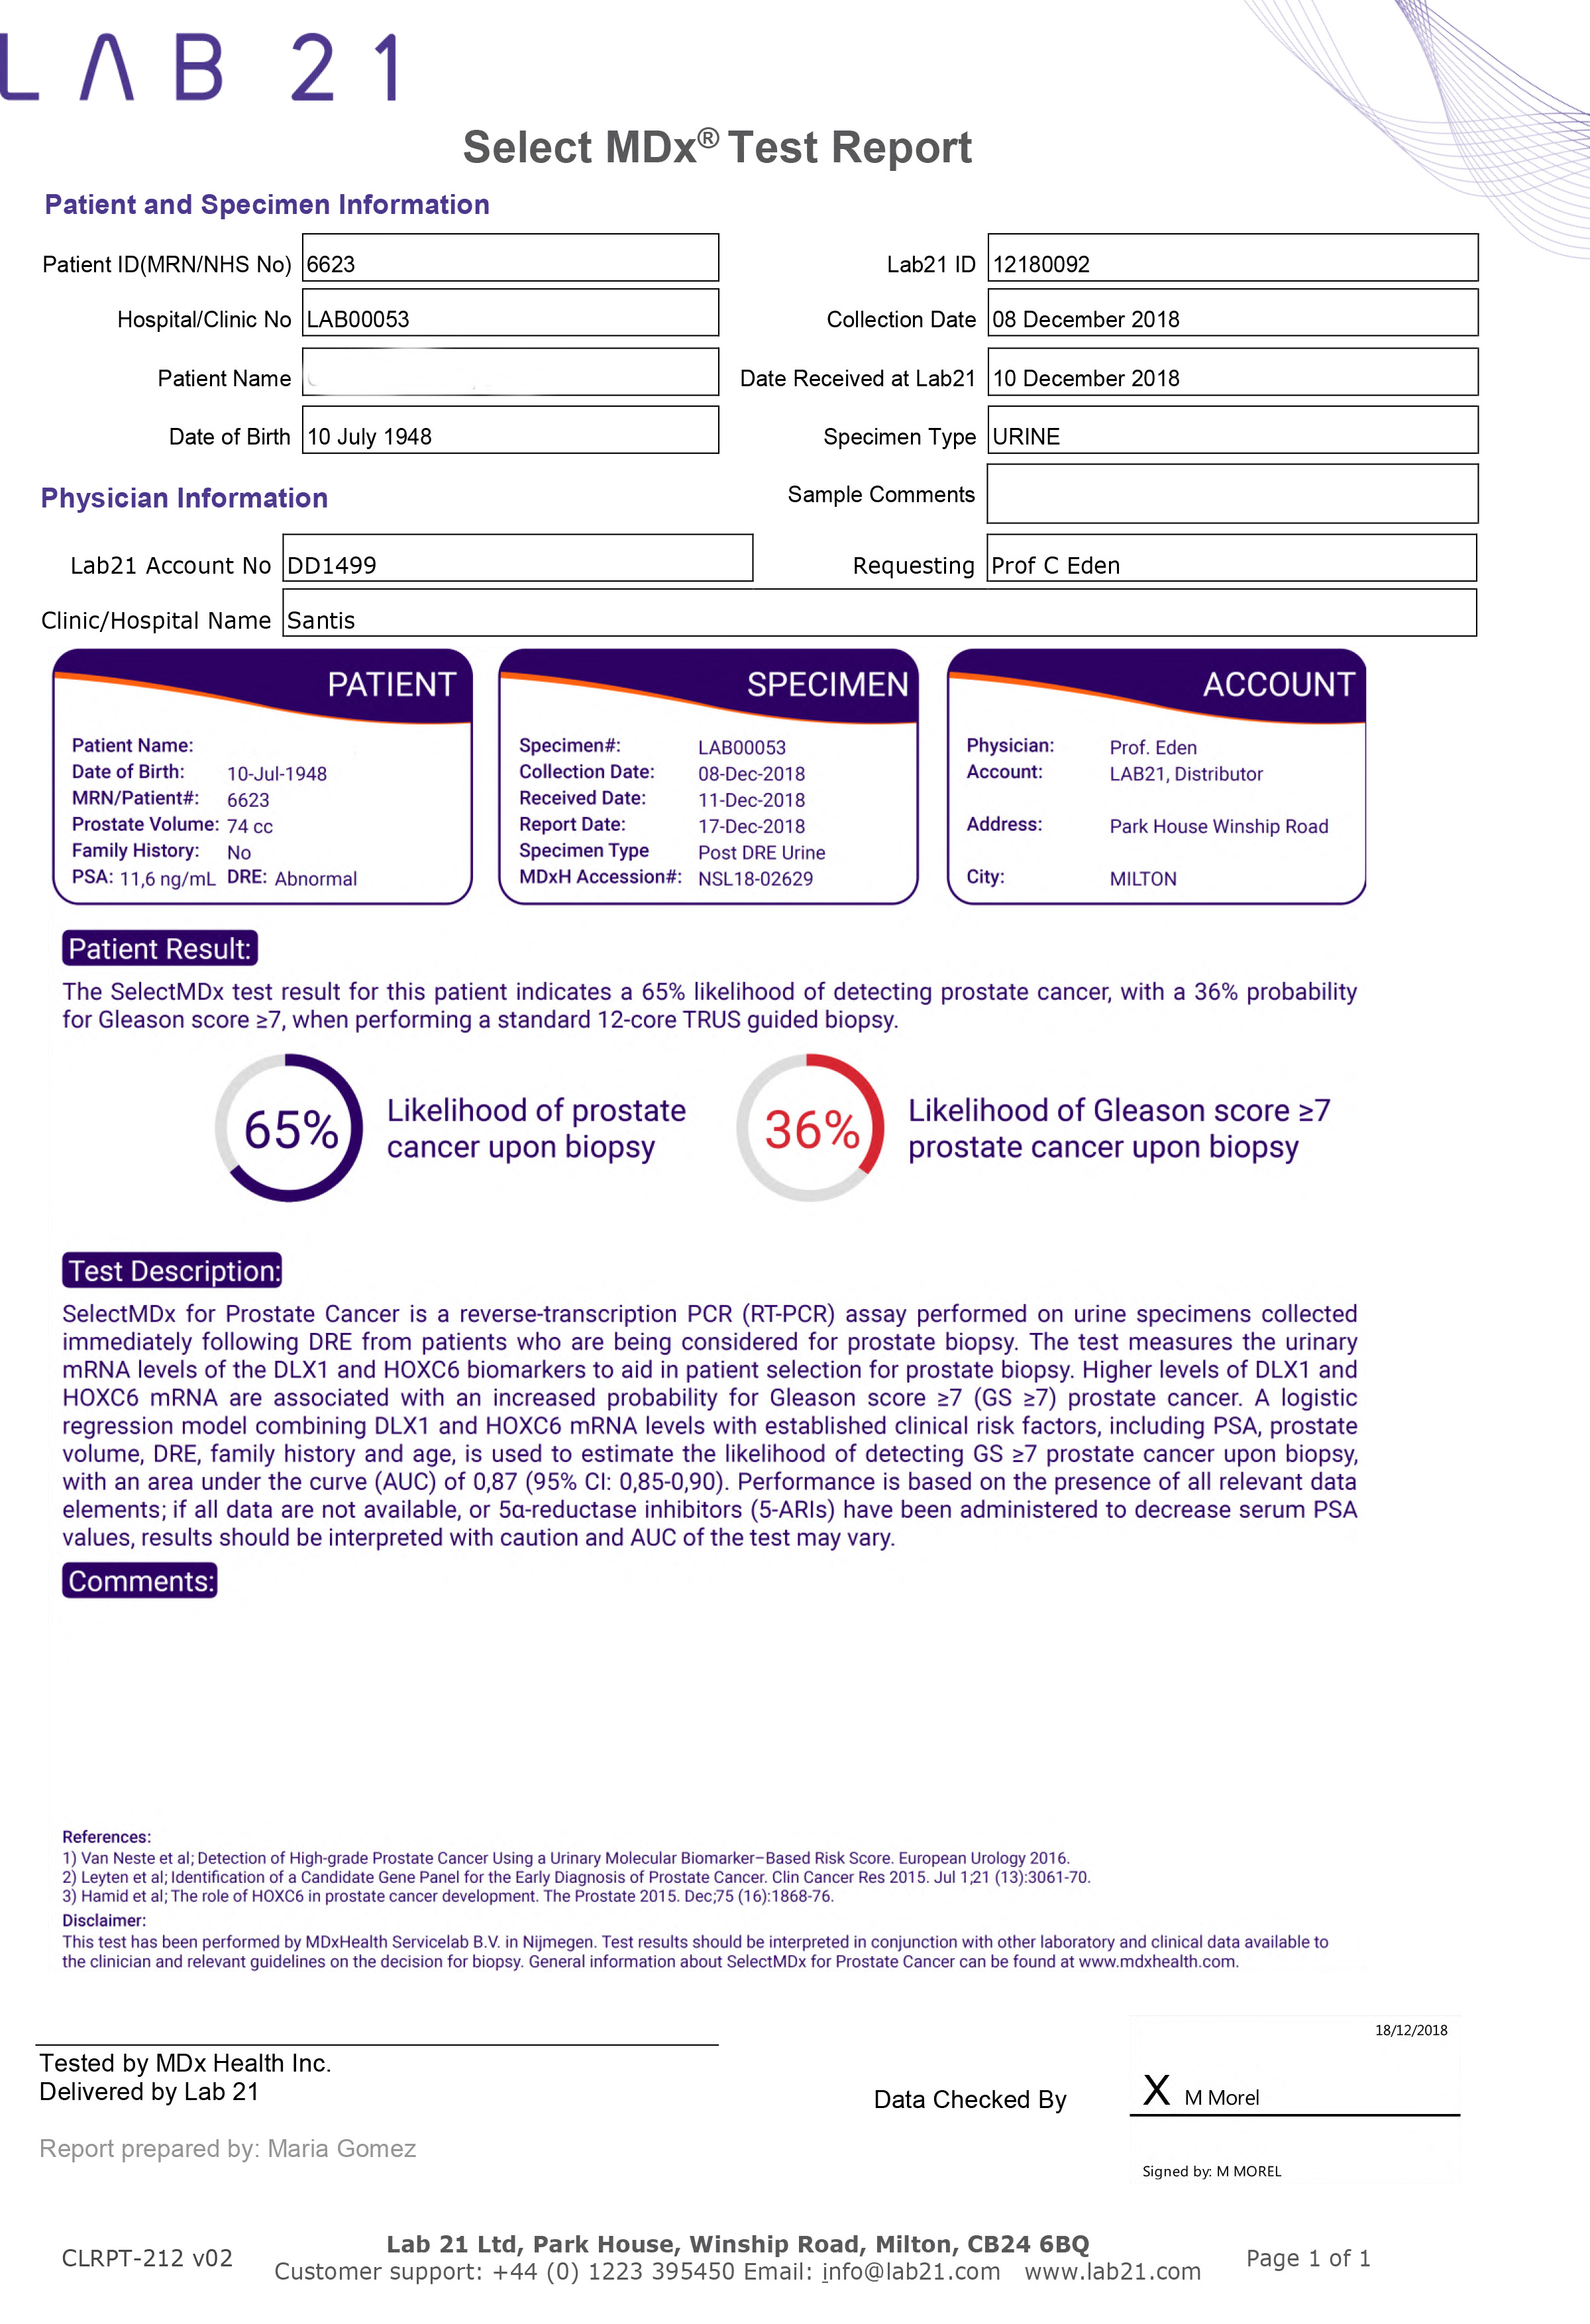 SelectMDX test report - positive for cancer